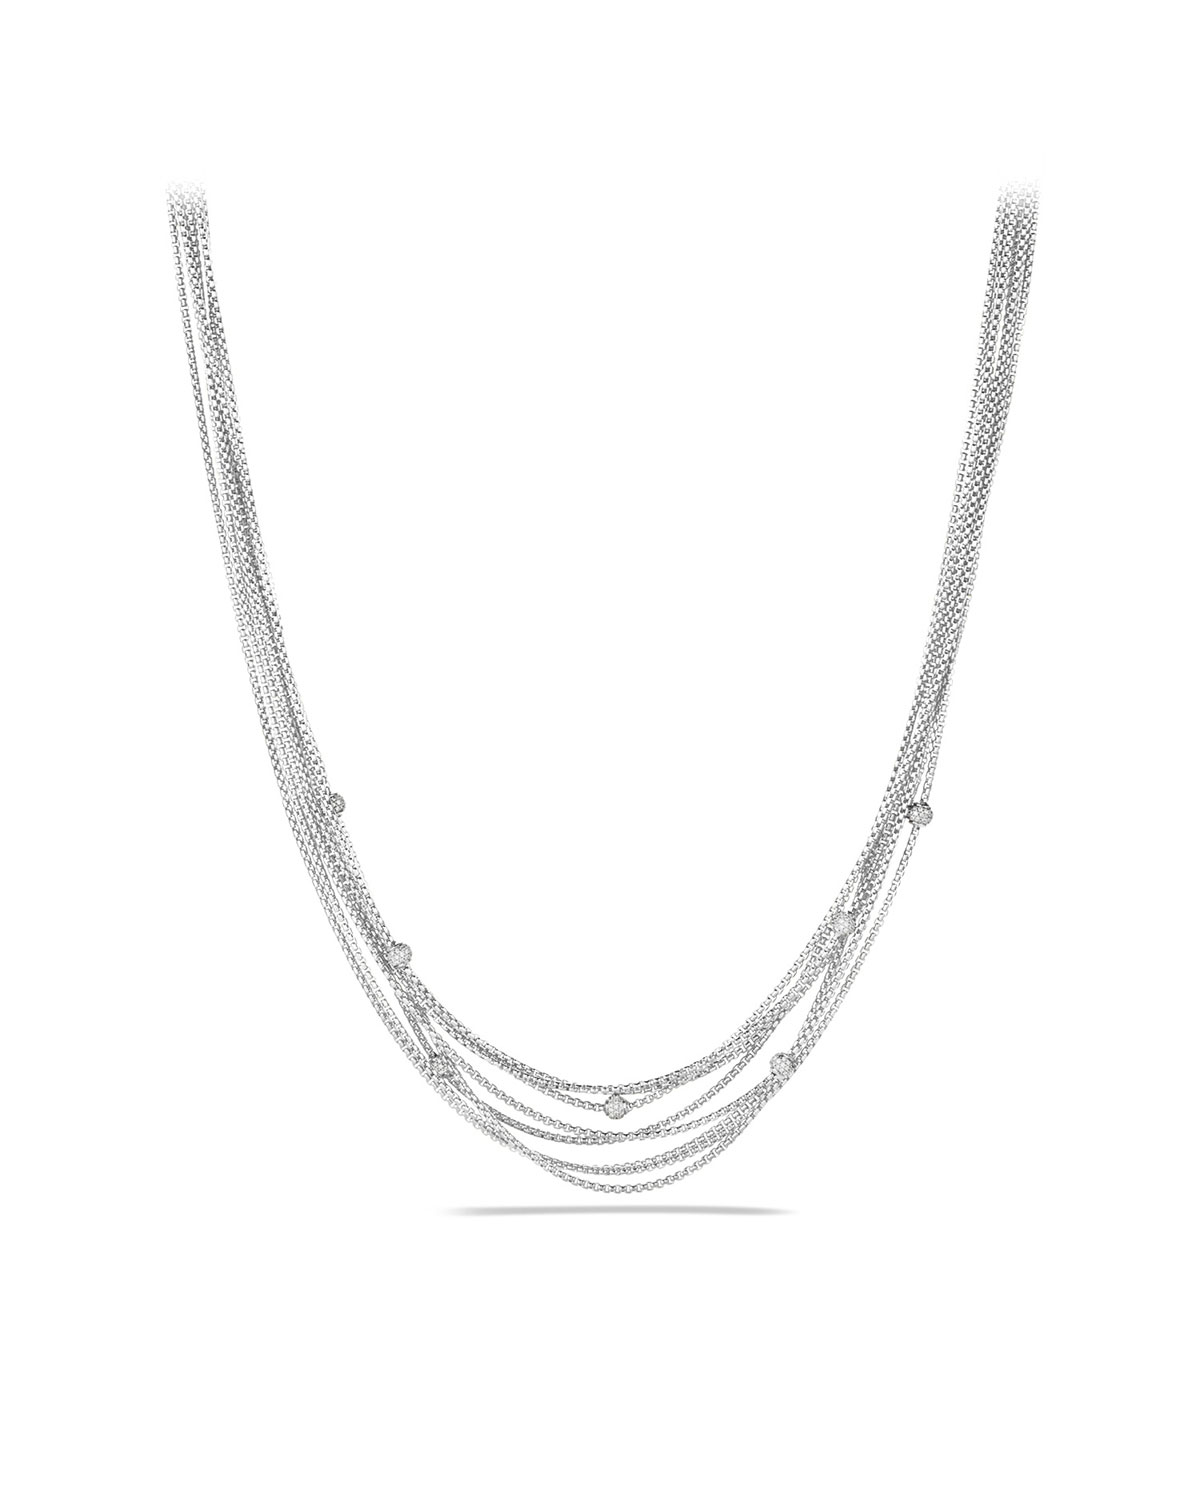 Eight-Row Chain Necklace with Diamond Beads